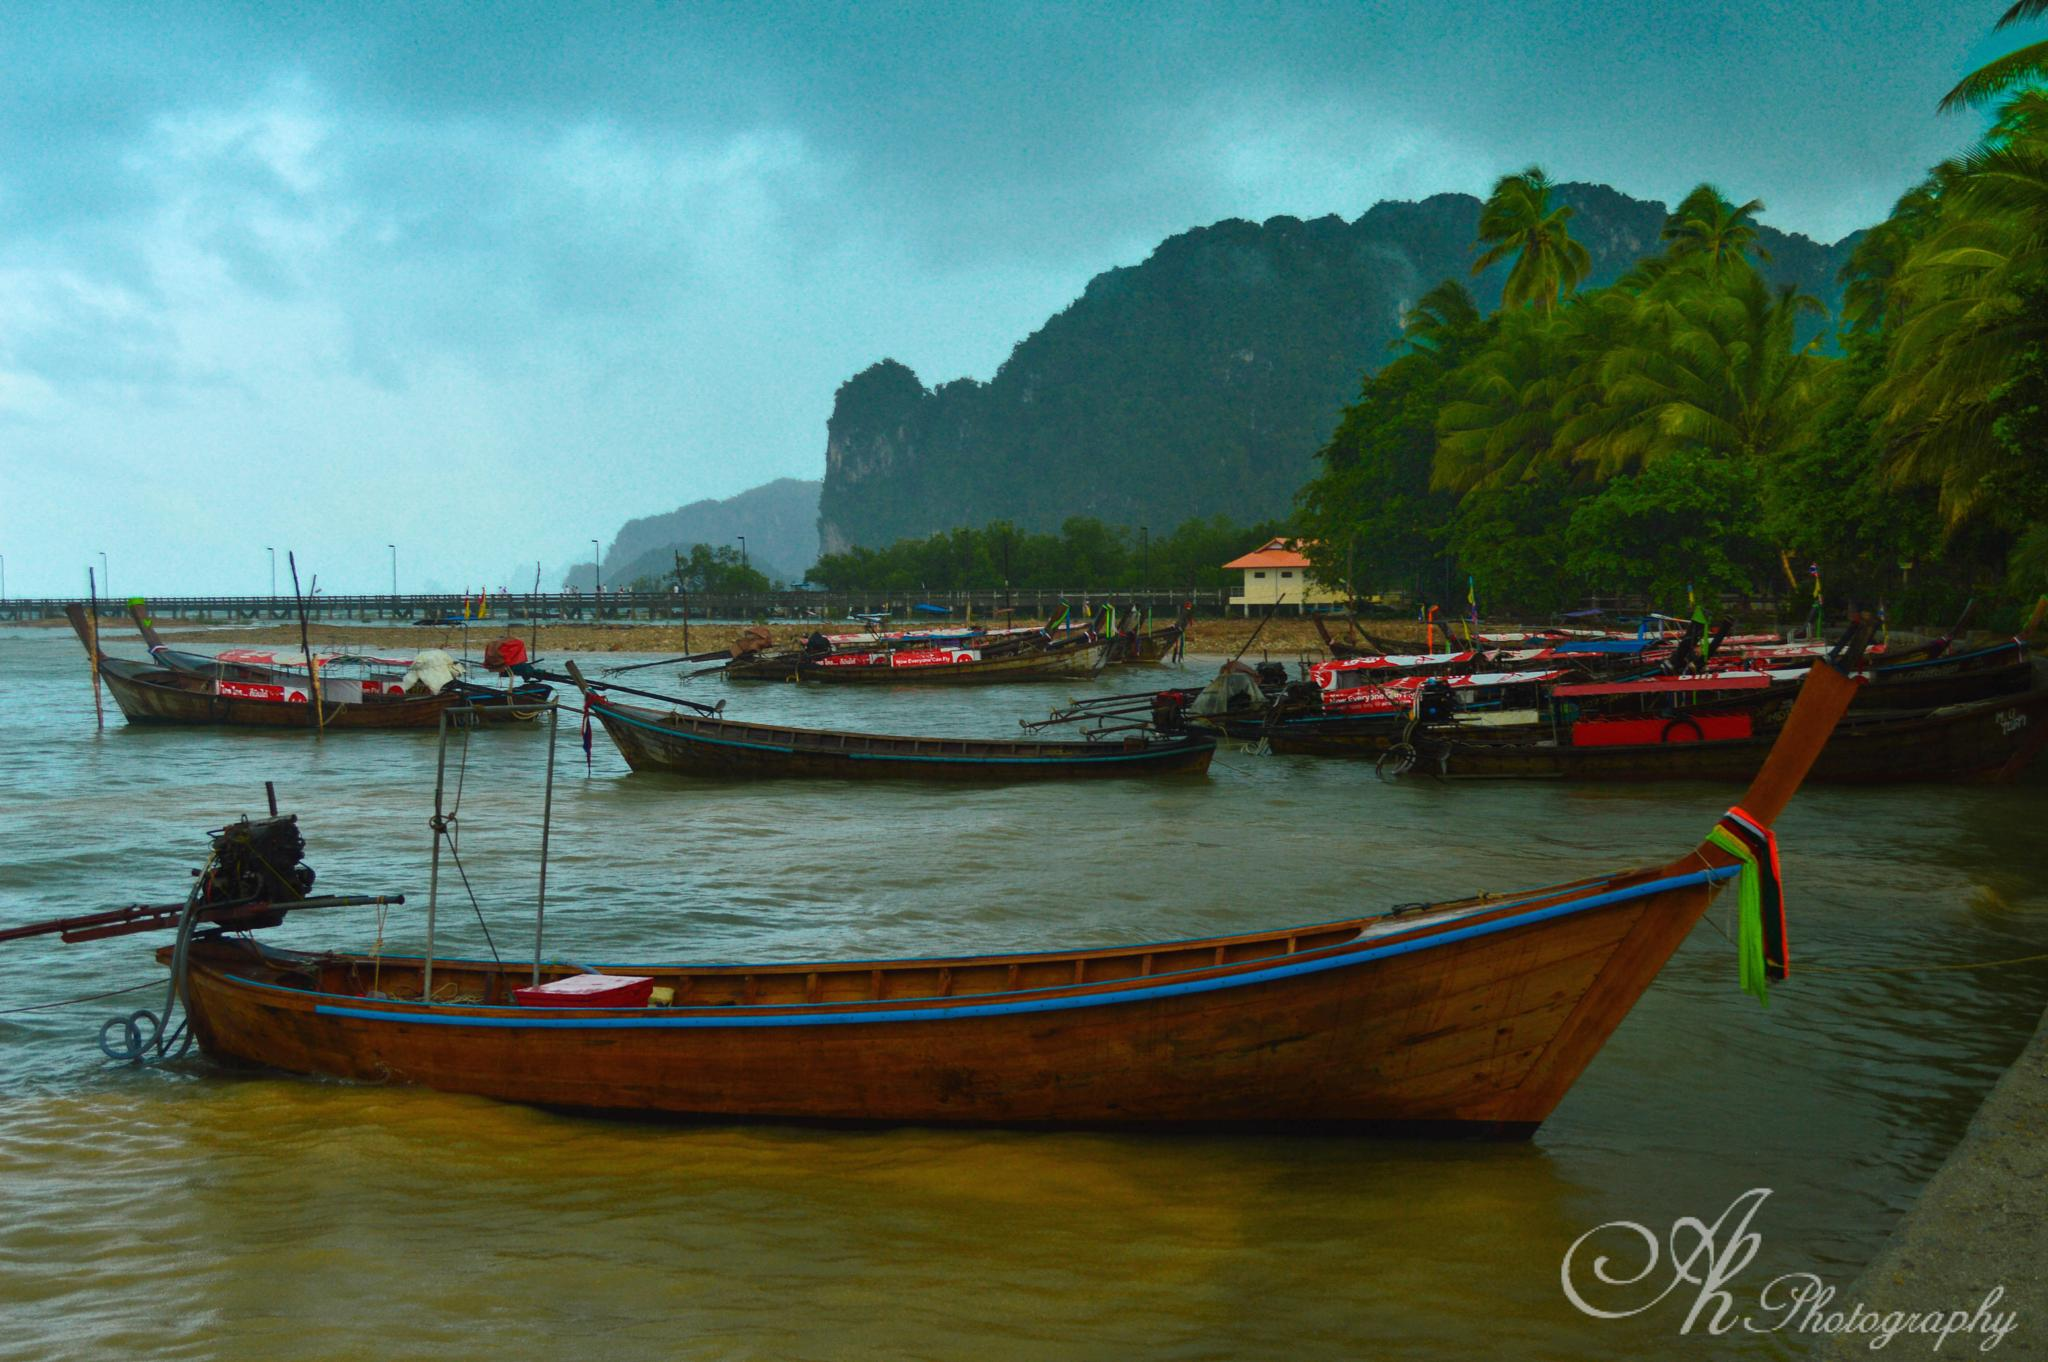 Stormy Day at the shore by Anupam Hore